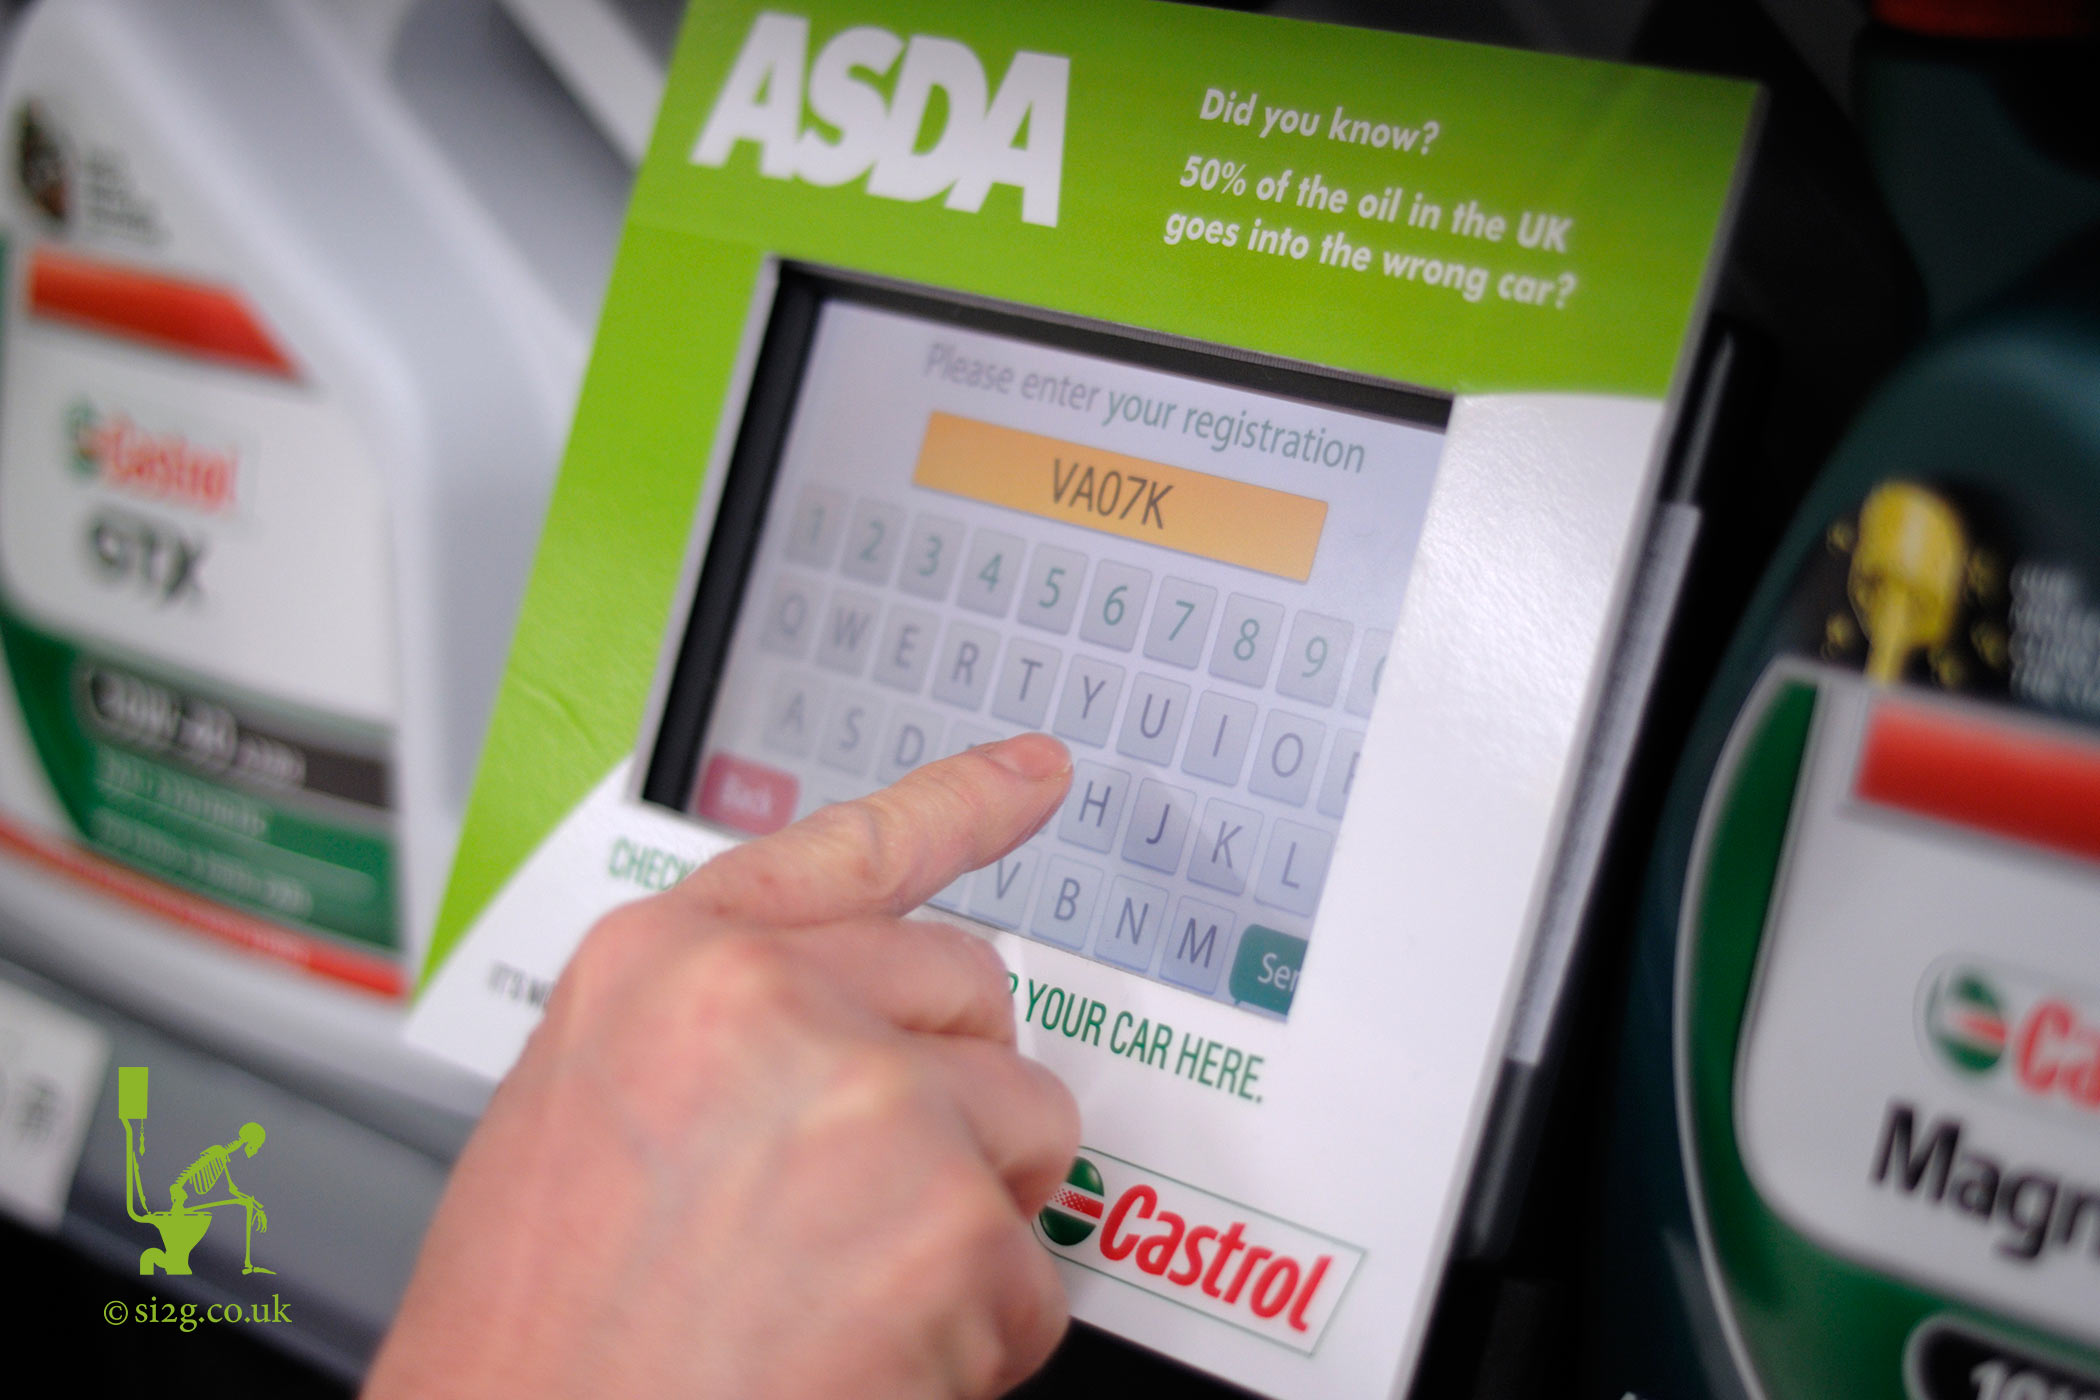 Electronic Oil Database - This device was on trial in a large supermarket.  It tells you what oil your car takes after you enter its number plate.  The company required photographs of the unit in situ for marketing purposes.